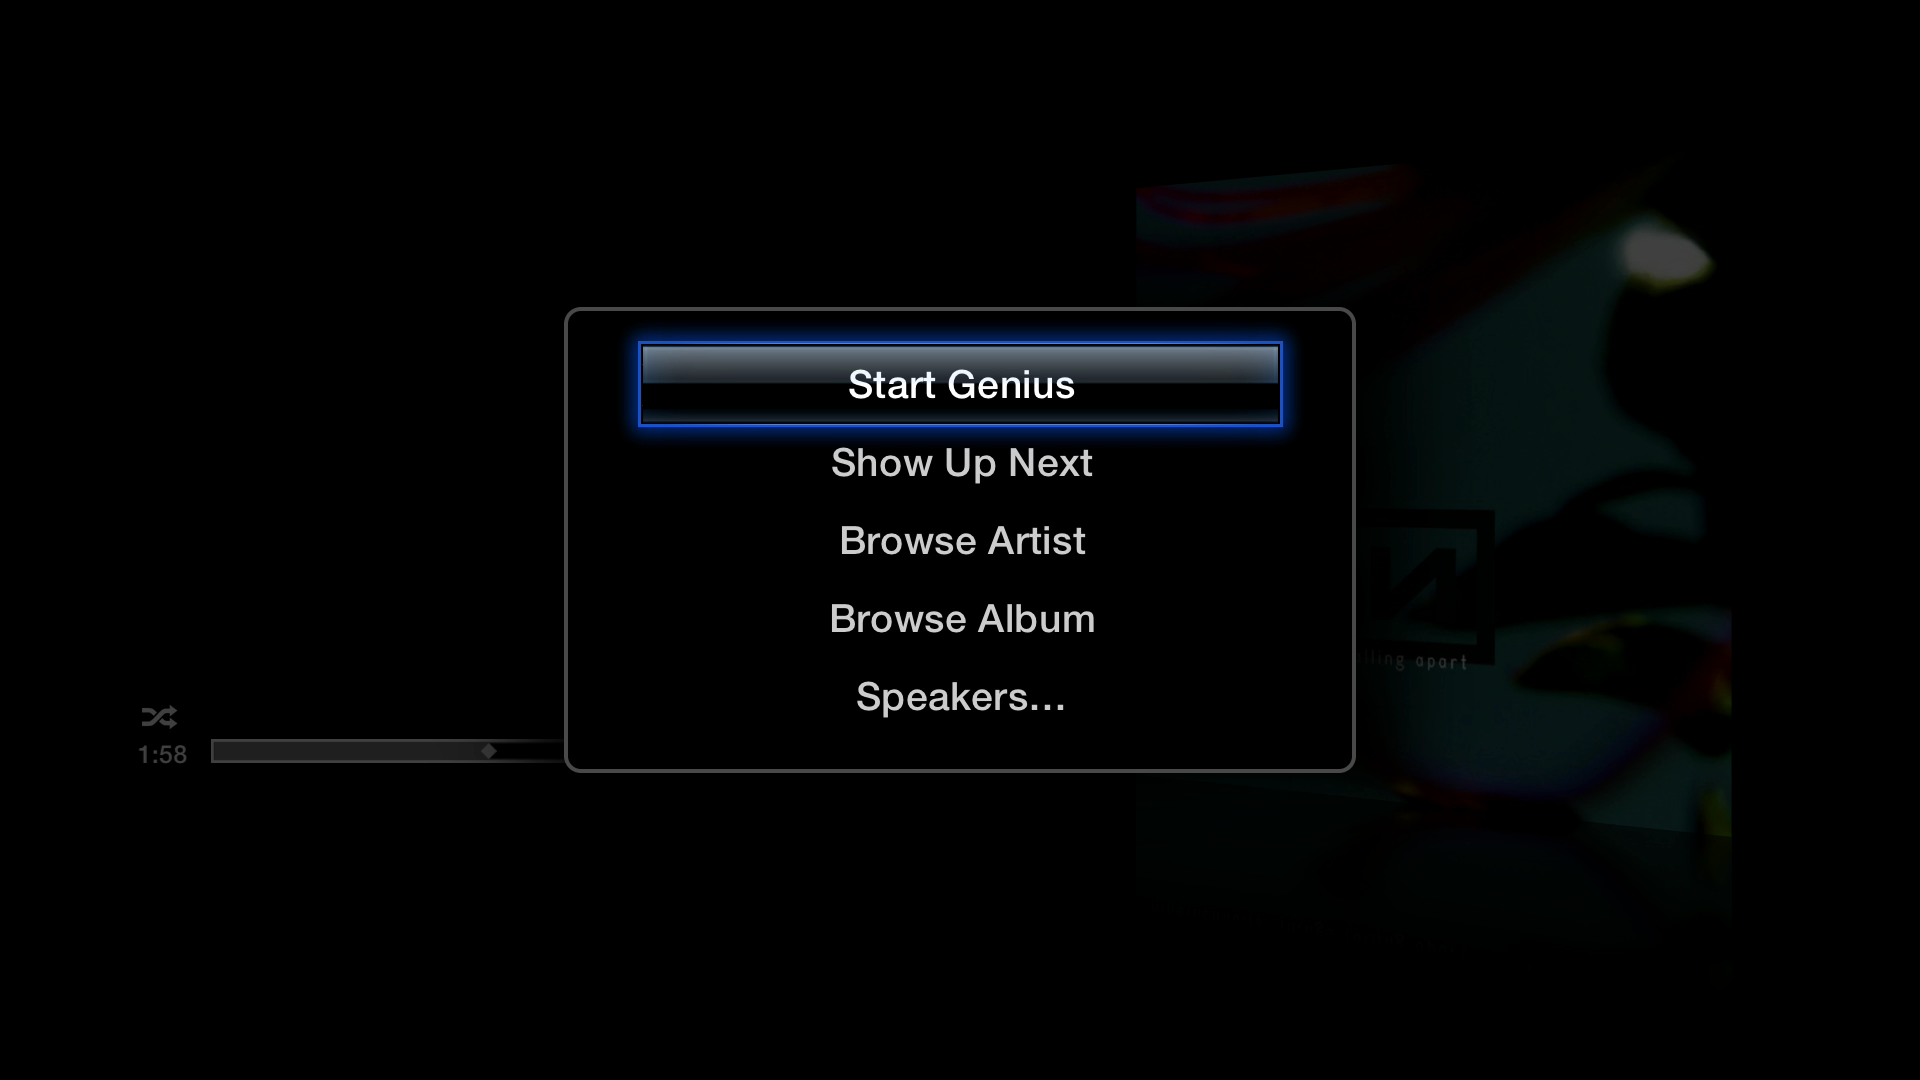 Figure 6: Hold Select in Now Playing to create a Genius playlist based on the current song, show the Up Next queue, see more by the artist or the rest of the album, and control AirPlay Speakers.